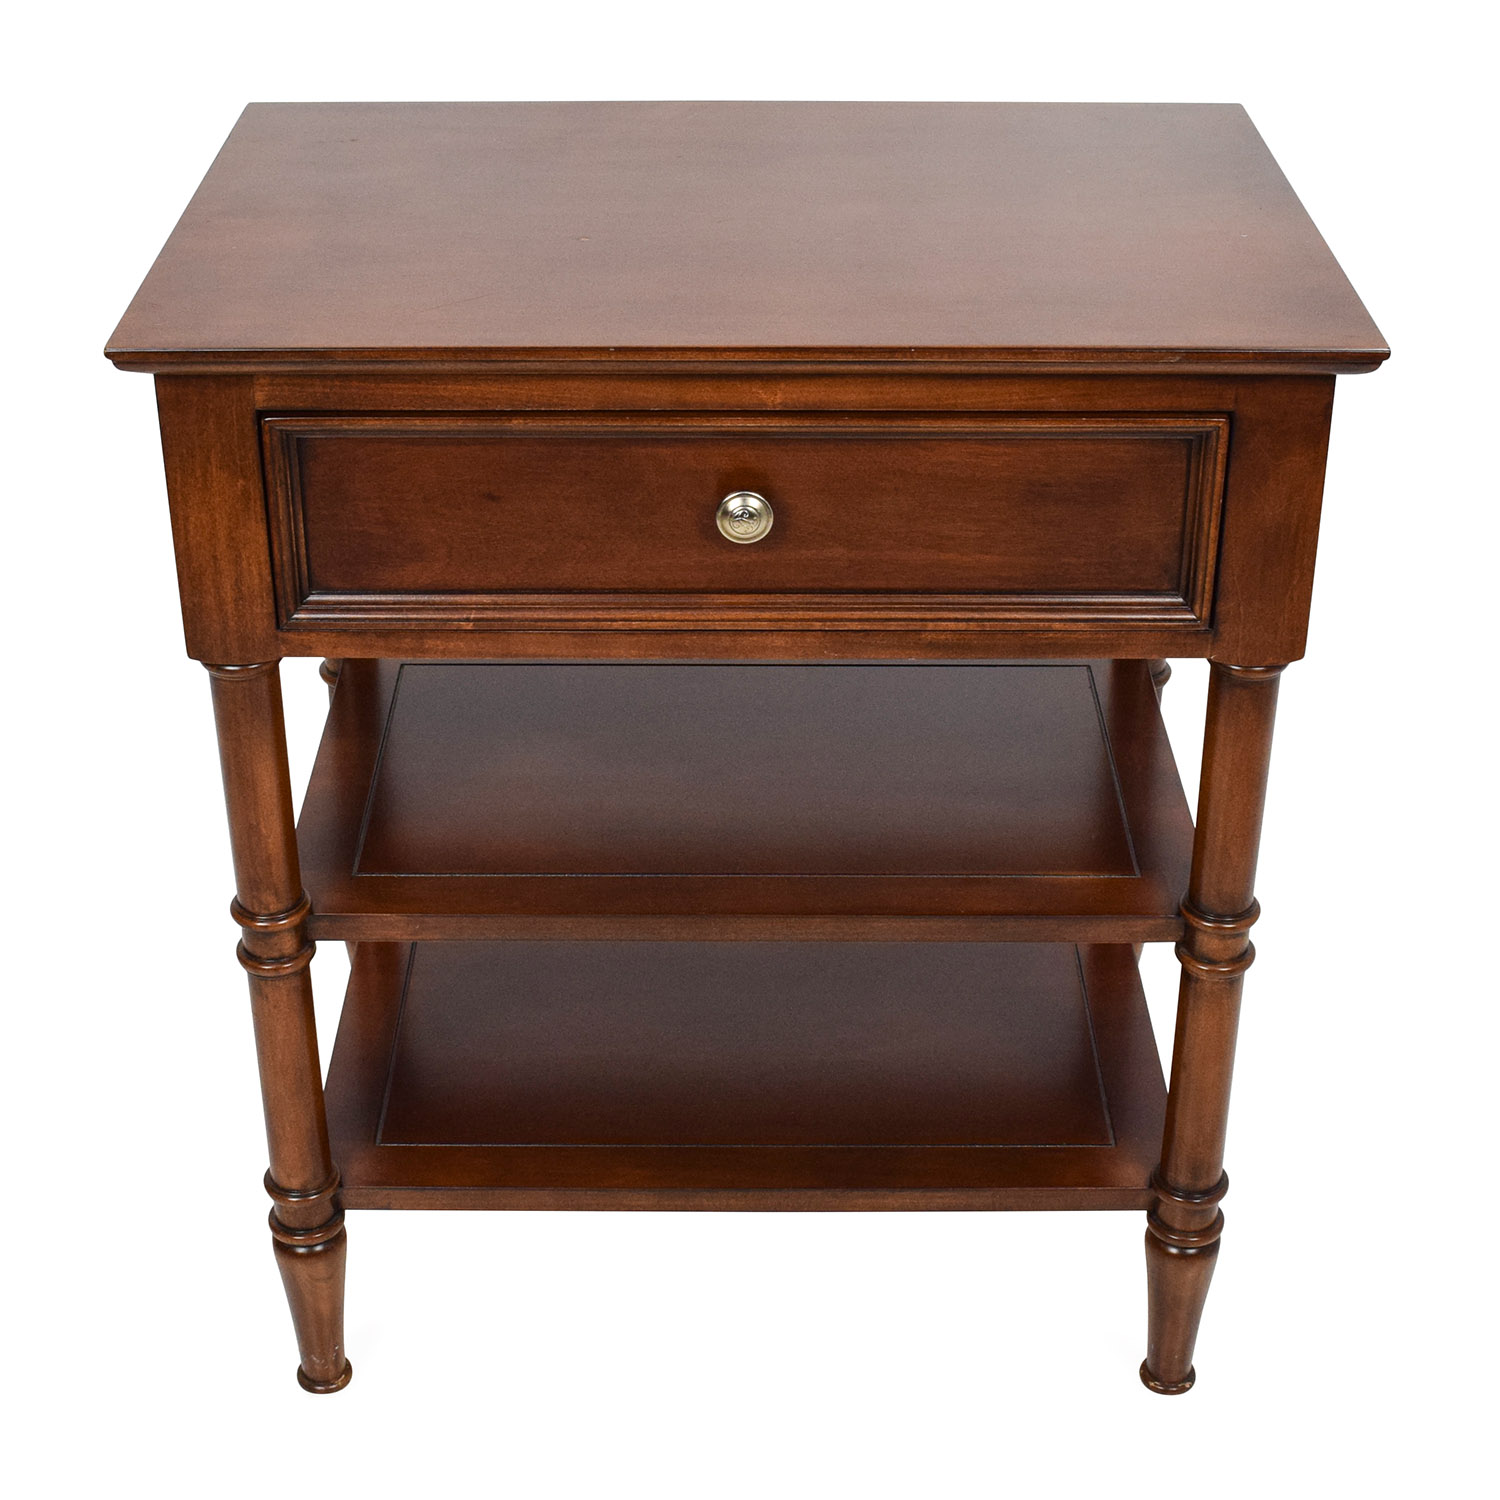 Postobello Gina Night Stand Postobello